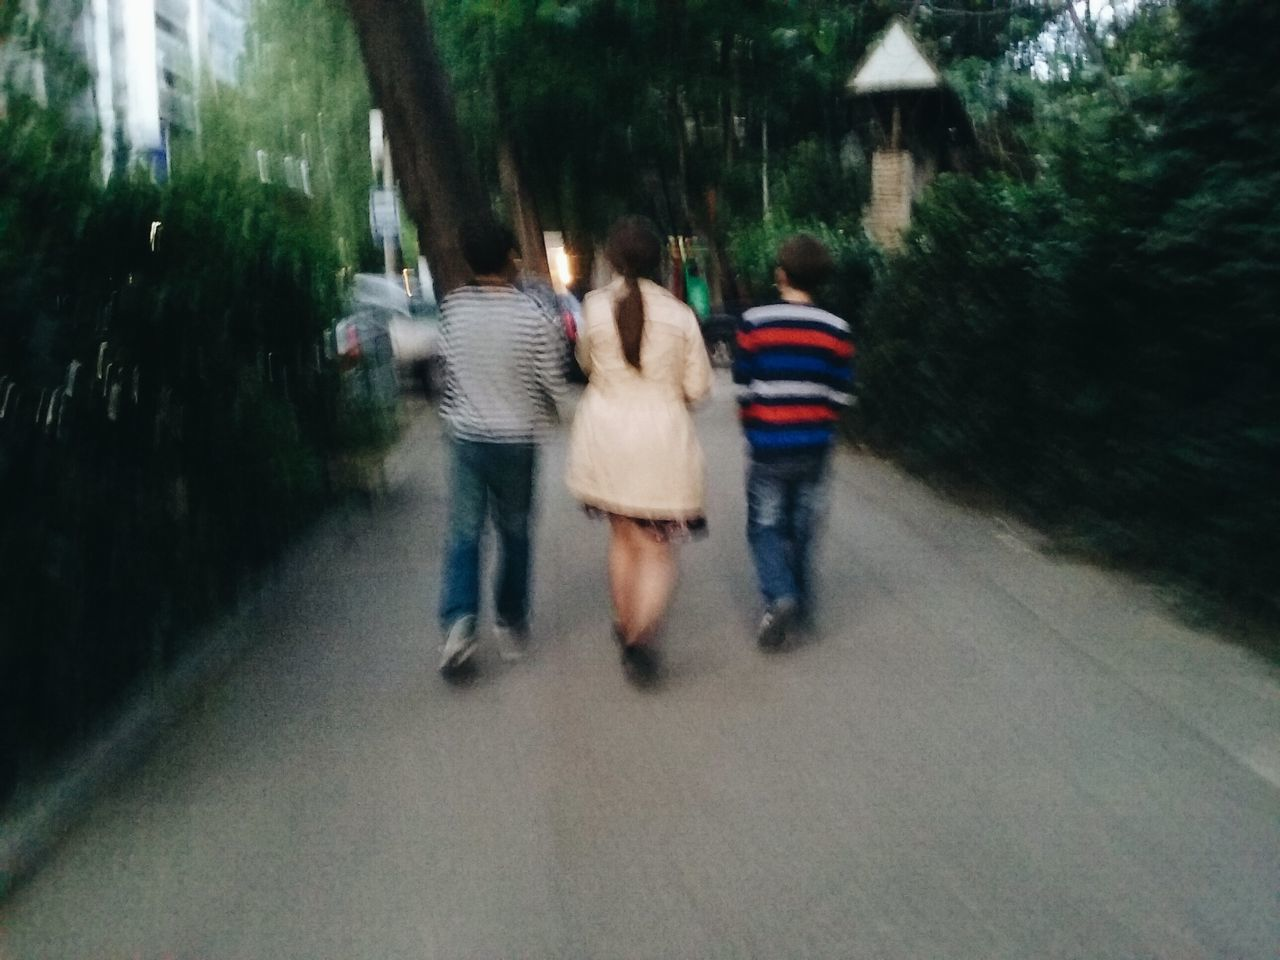 Togetherness Walking Young Adult Adult Friendship Rear View People Casual Clothing Young Women Full Length Women Adults Only Men Outdoors Group Of People Young Men Day Bonding Real People Water Children Child Childhood Spring Taking Photos The Street Photographer - 2017 EyeEm Awards